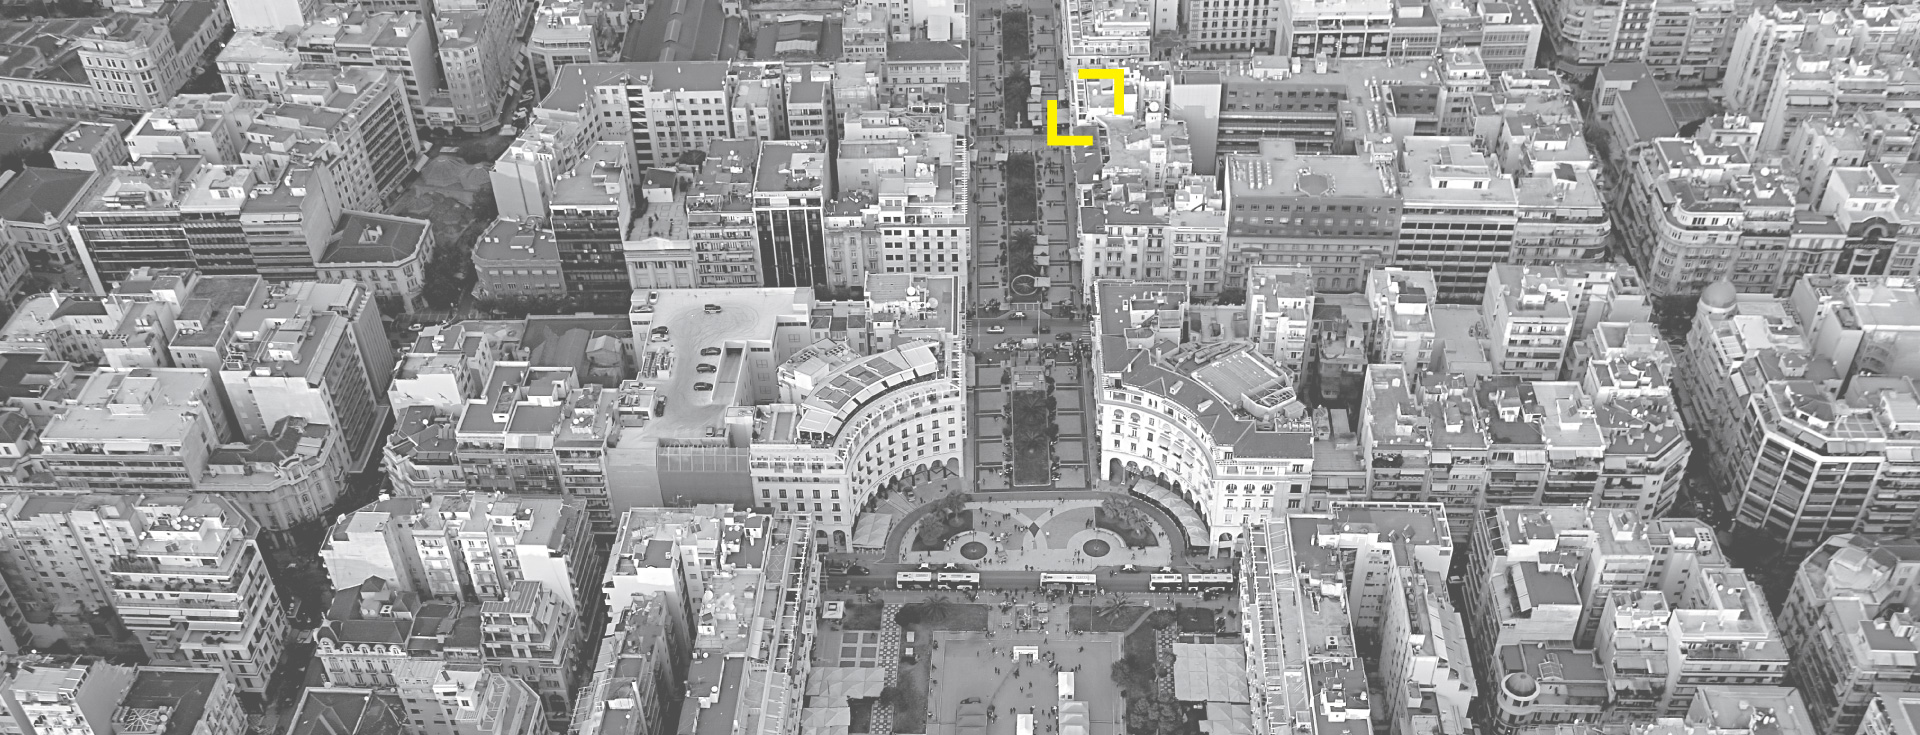 Thessaloniki Center, Aristotelous square, aerial Photo